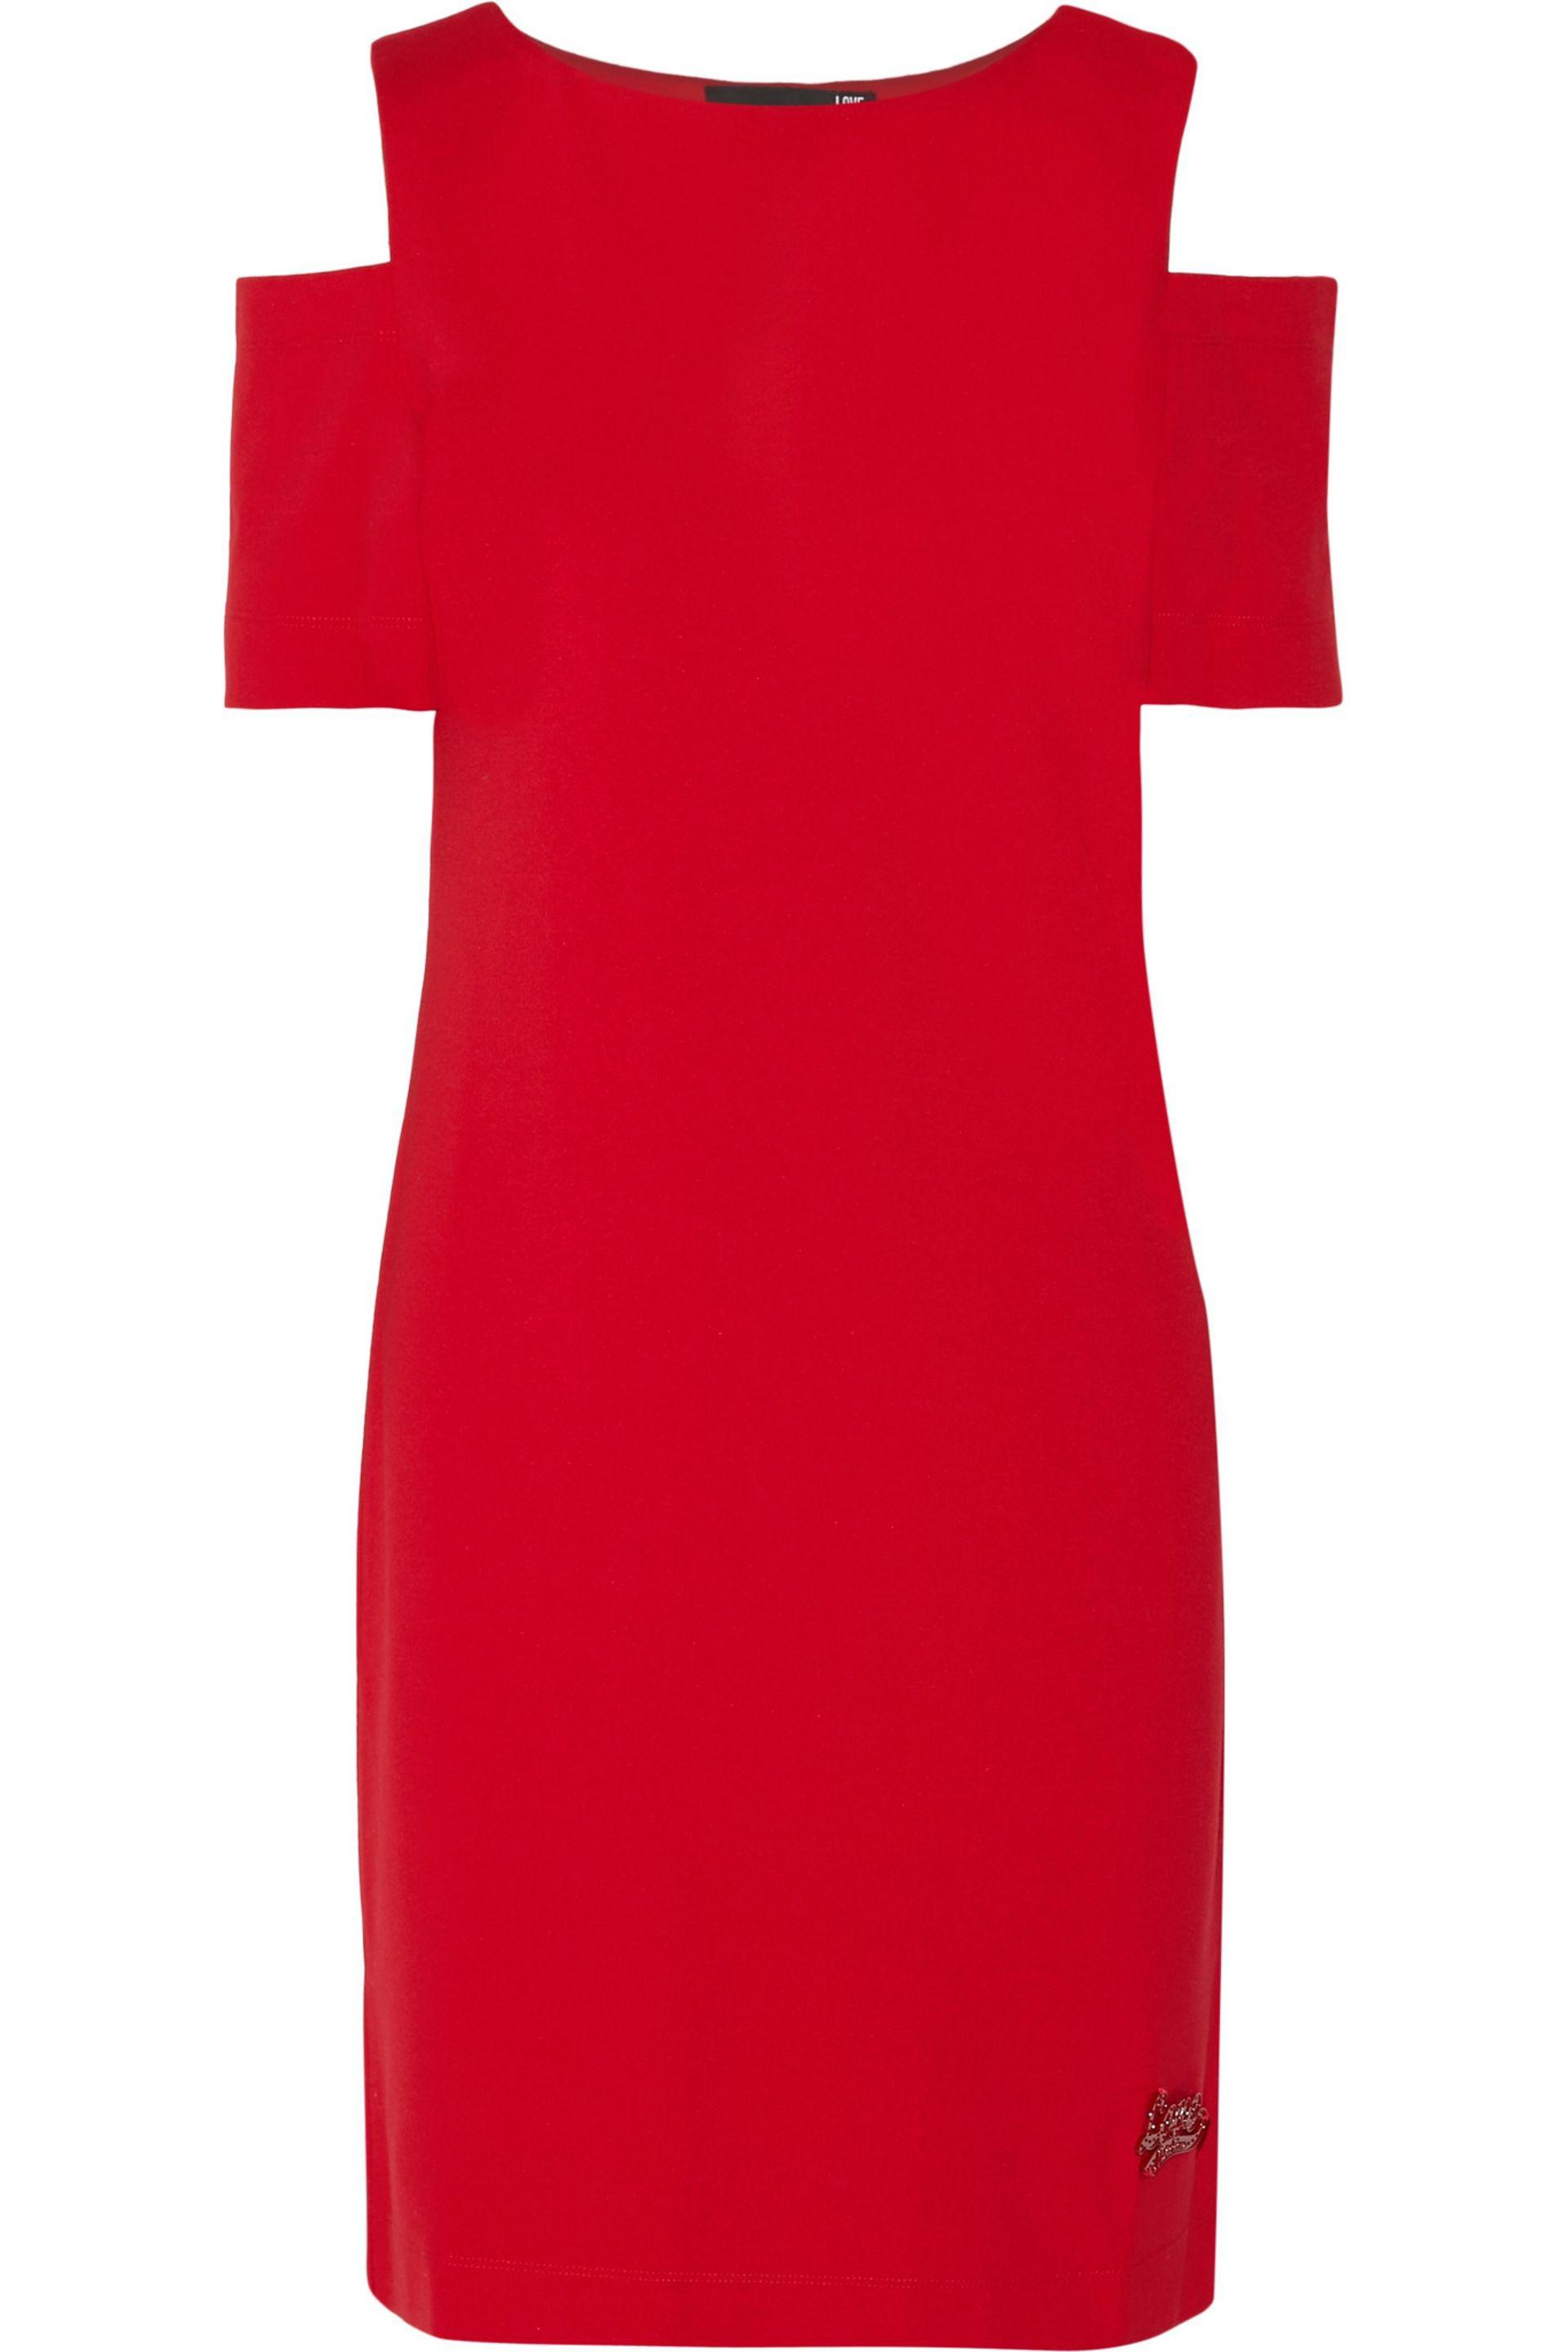 Amour Femme Moschino Mini Robe Ceinturée Taille Ponte Rouge 44 Amour Moschino YmADSv3